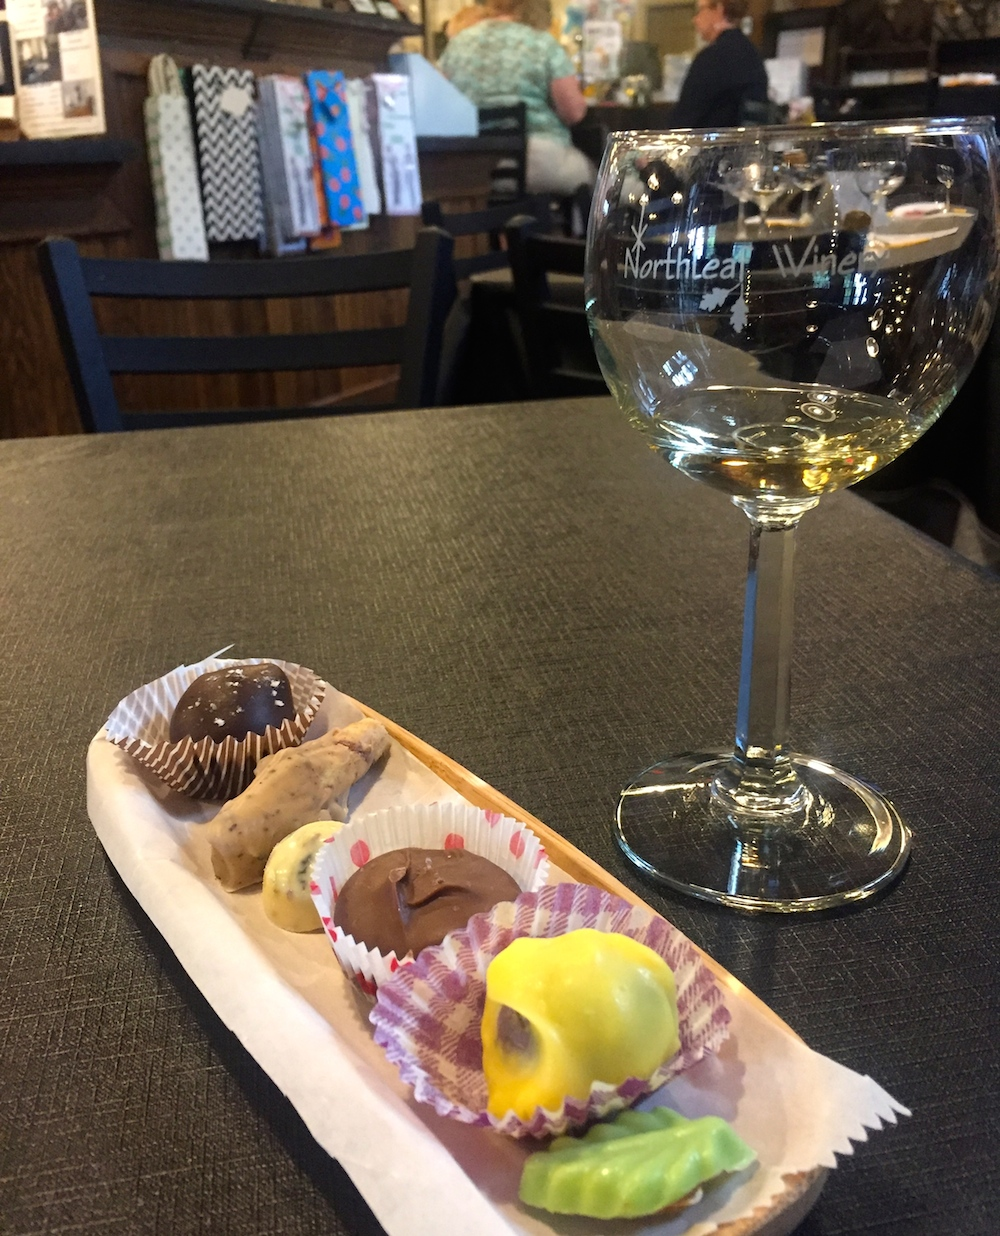 Glass of white wine paired with handmade chocolates at Northleaf Winery near Janesville, Wisconsin